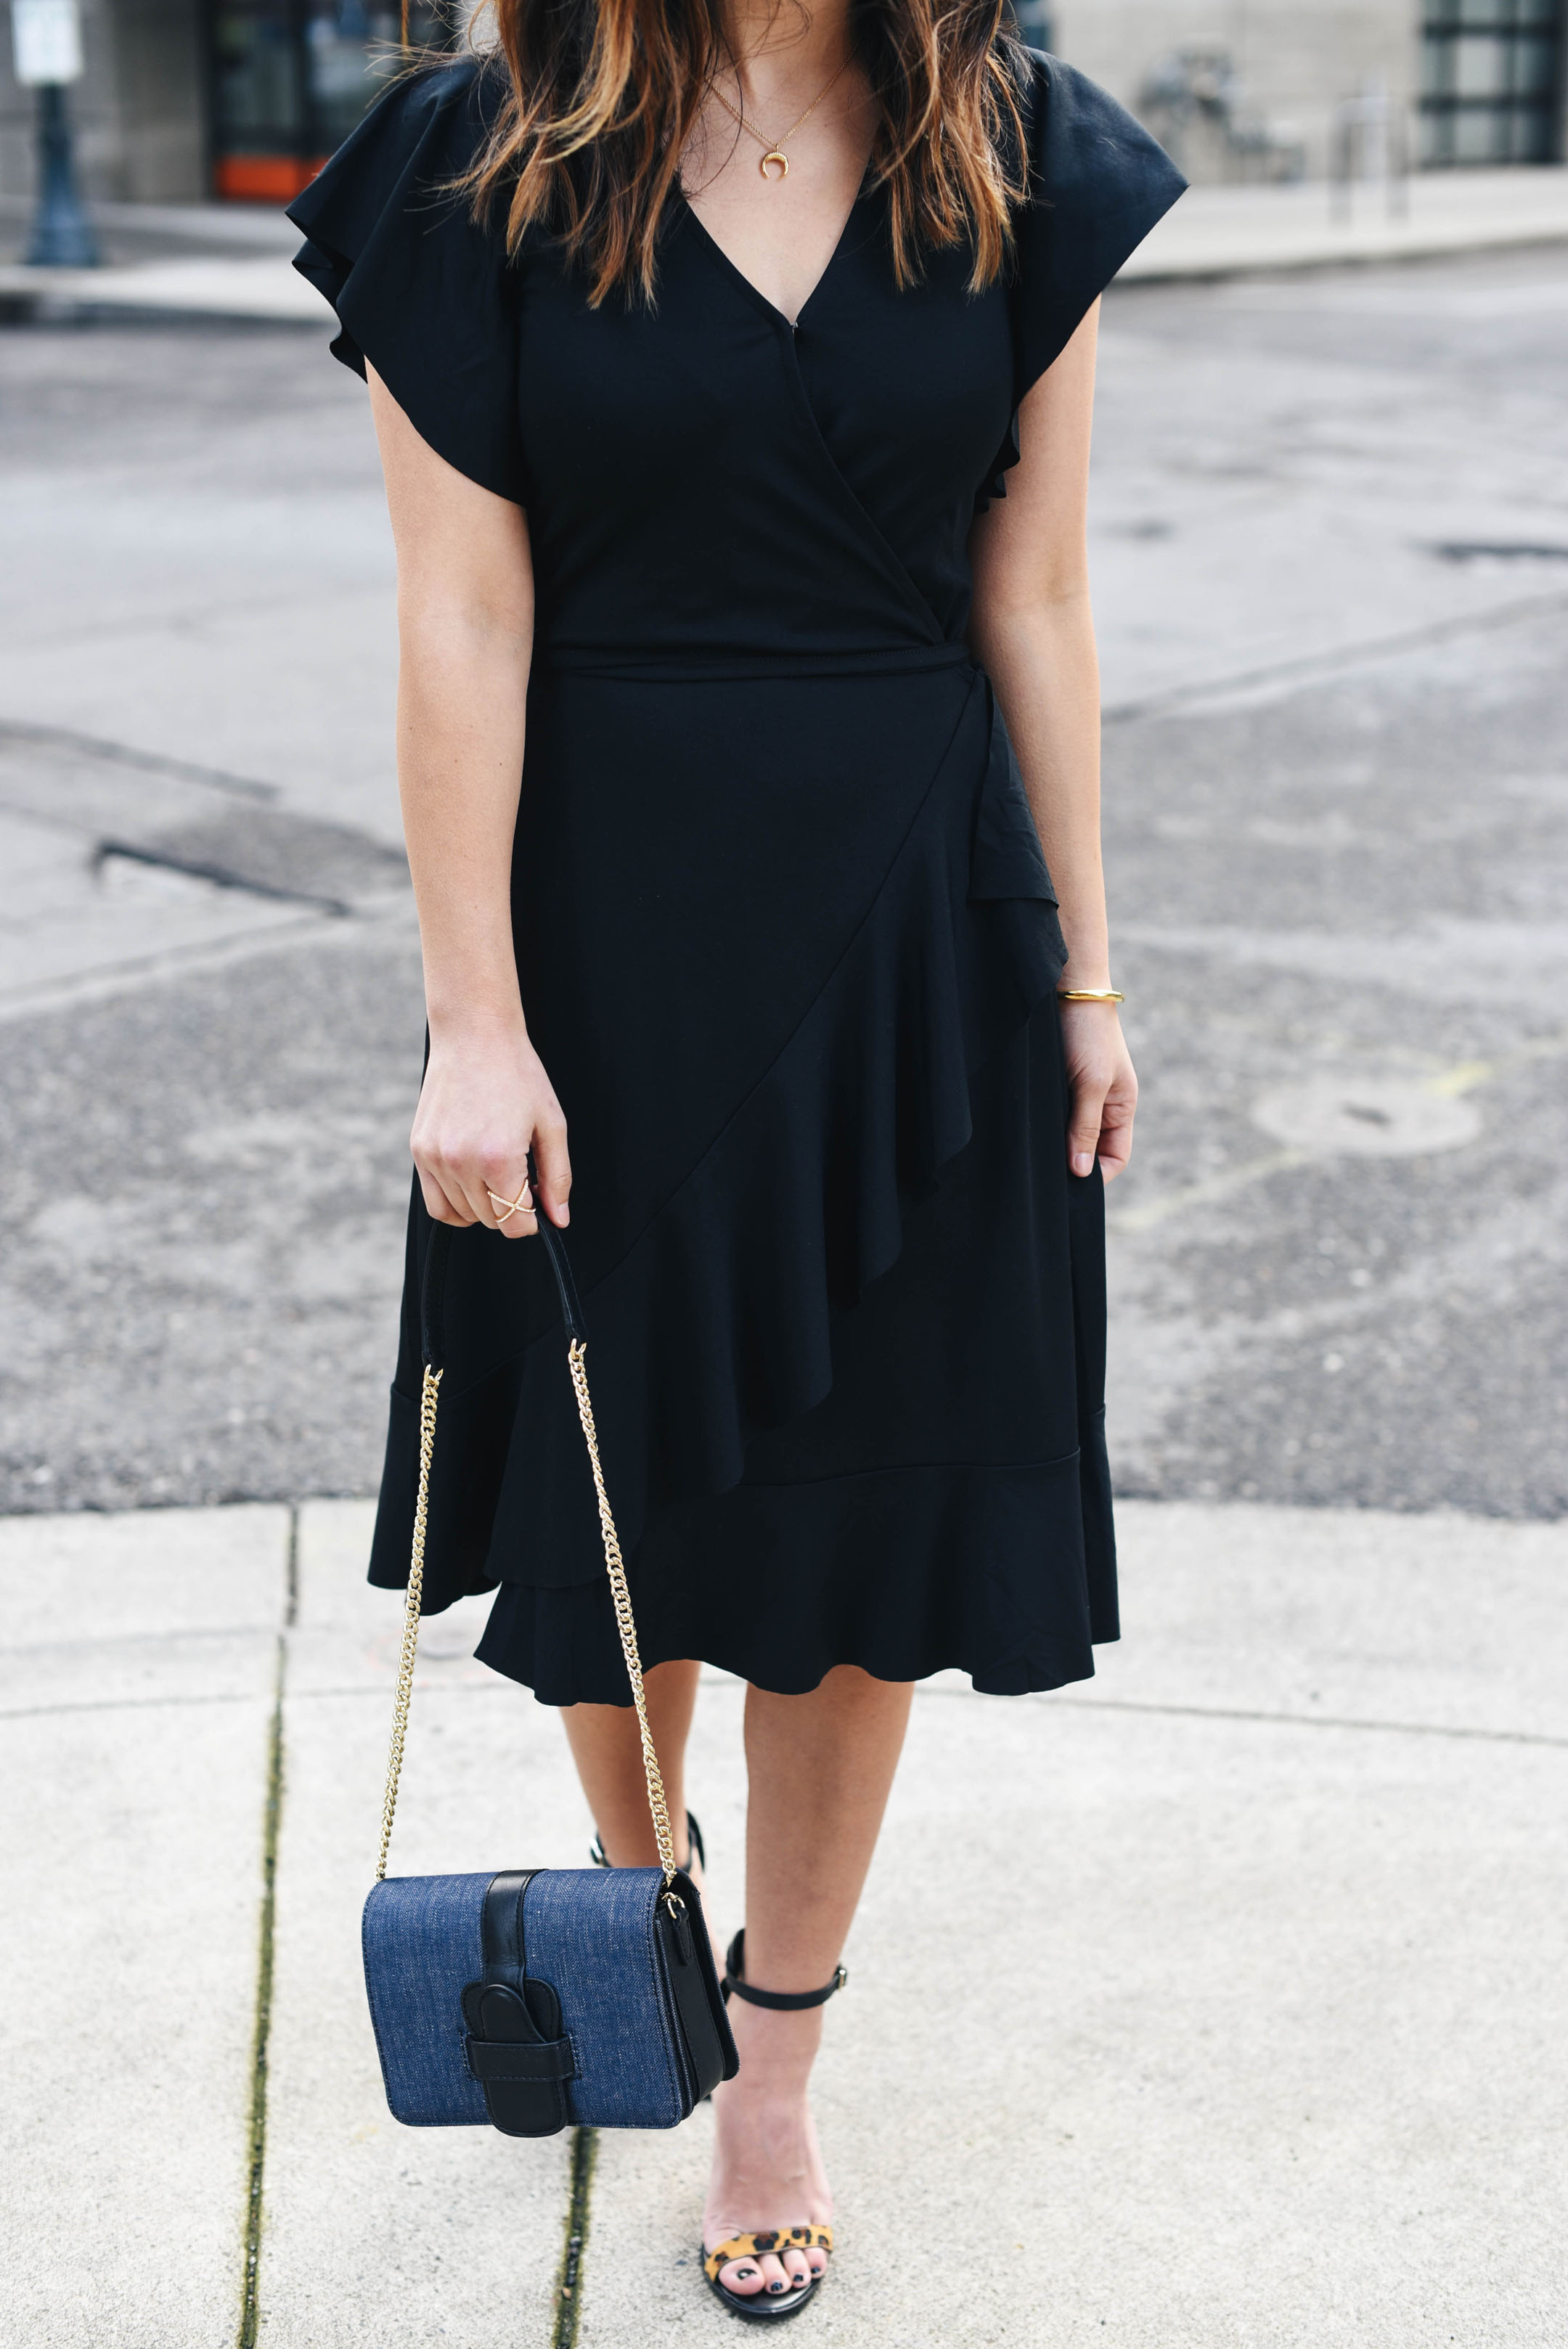 Banana Republic petite black wrap dress